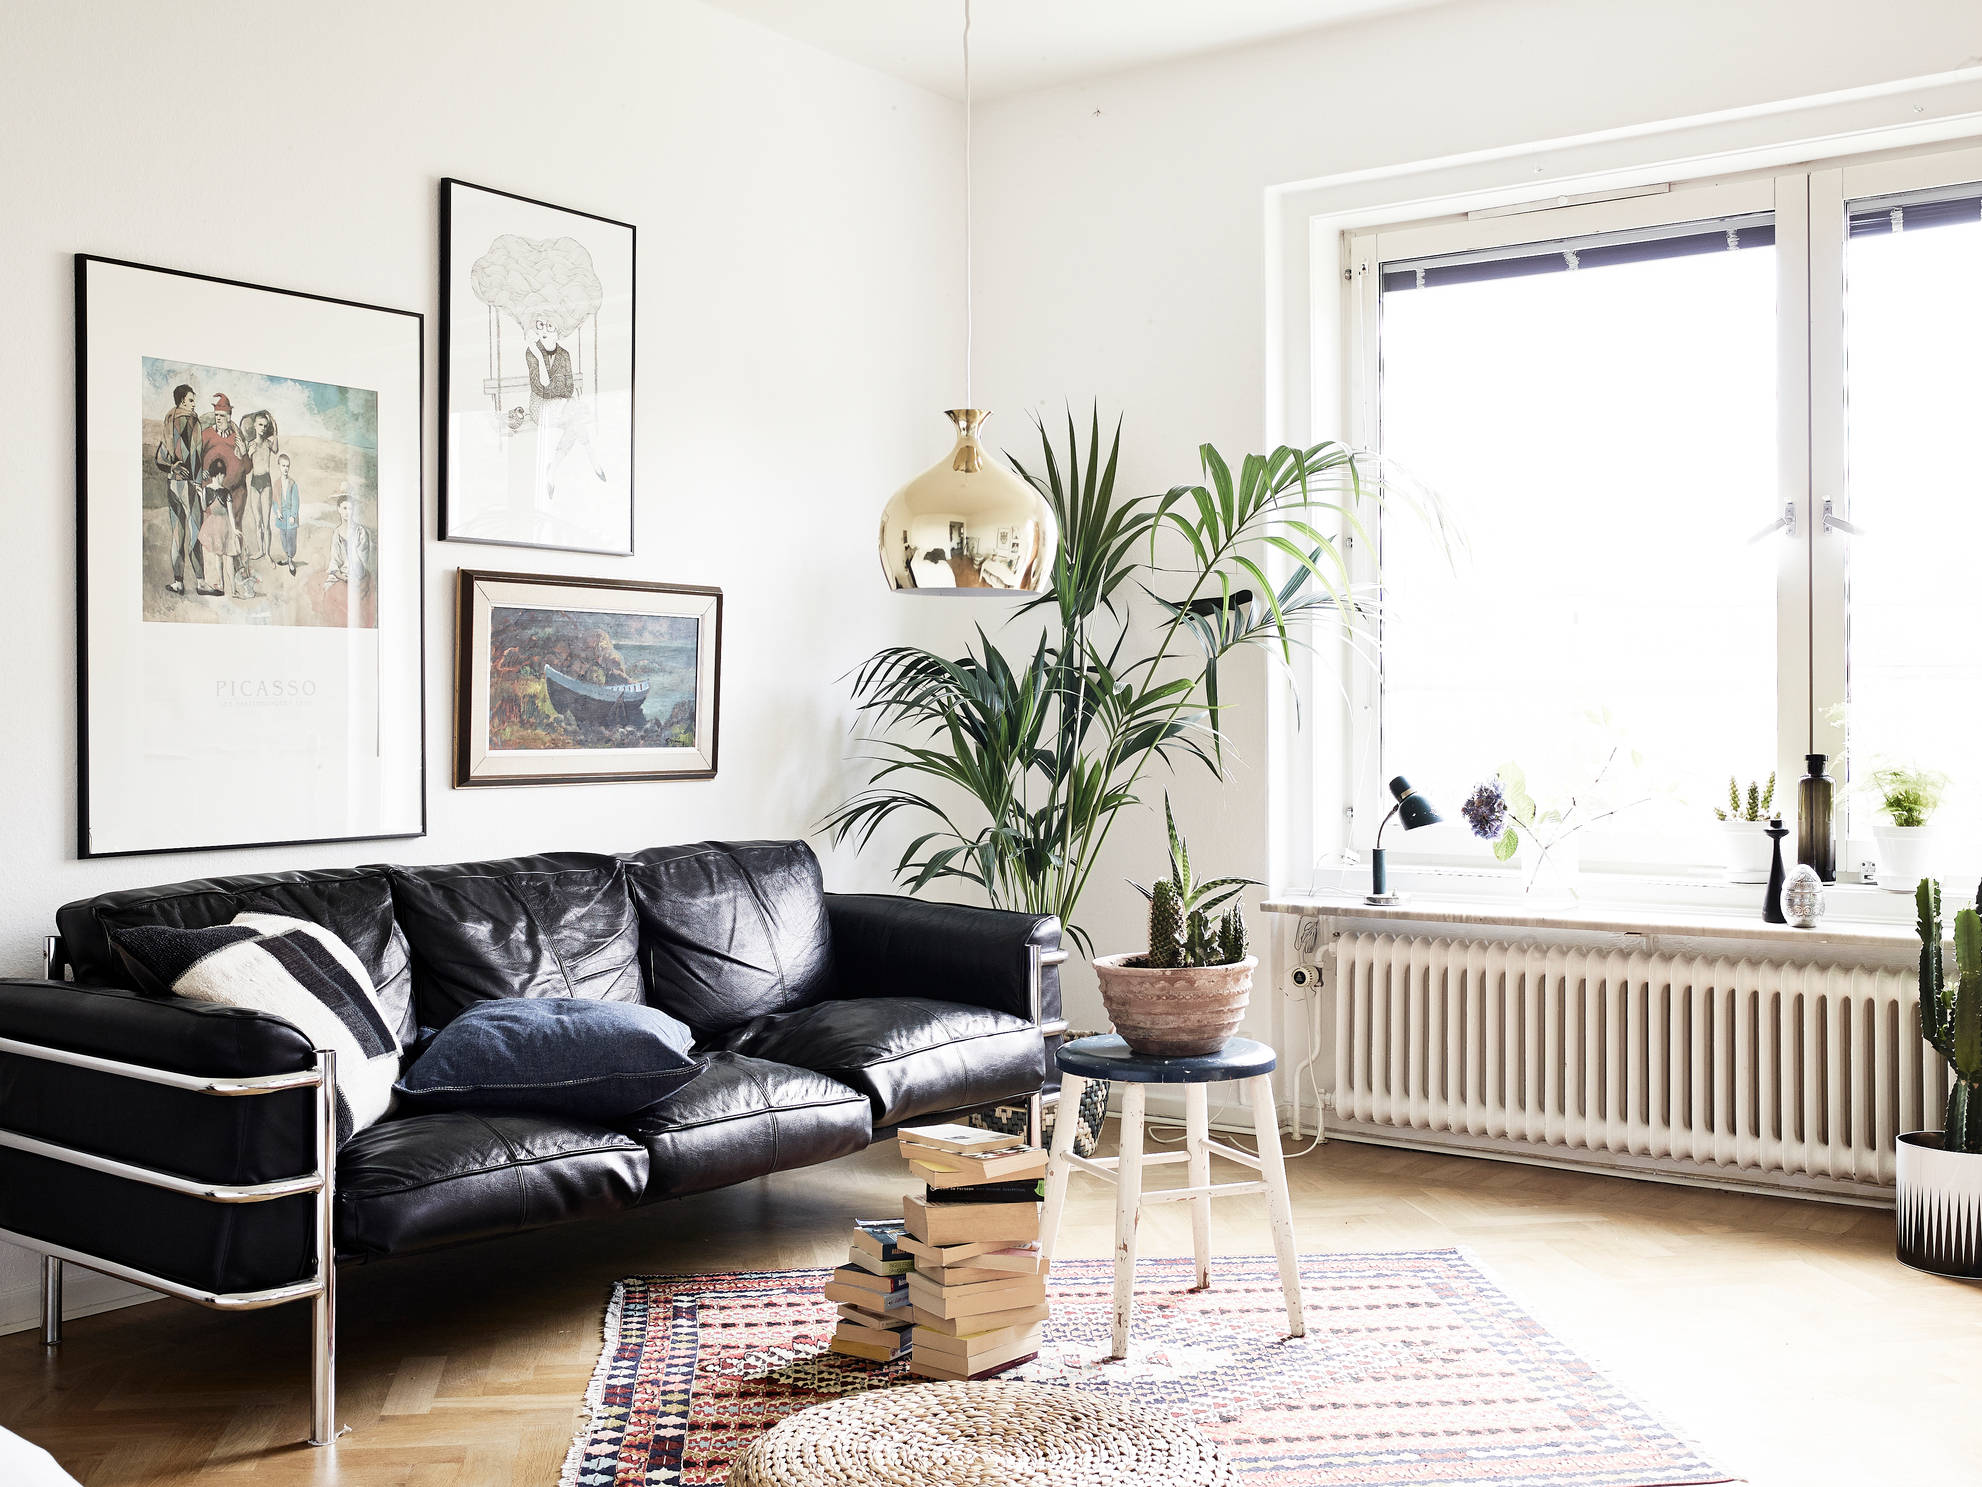 Mid century modern flat with lots of plants   coco lapine ...